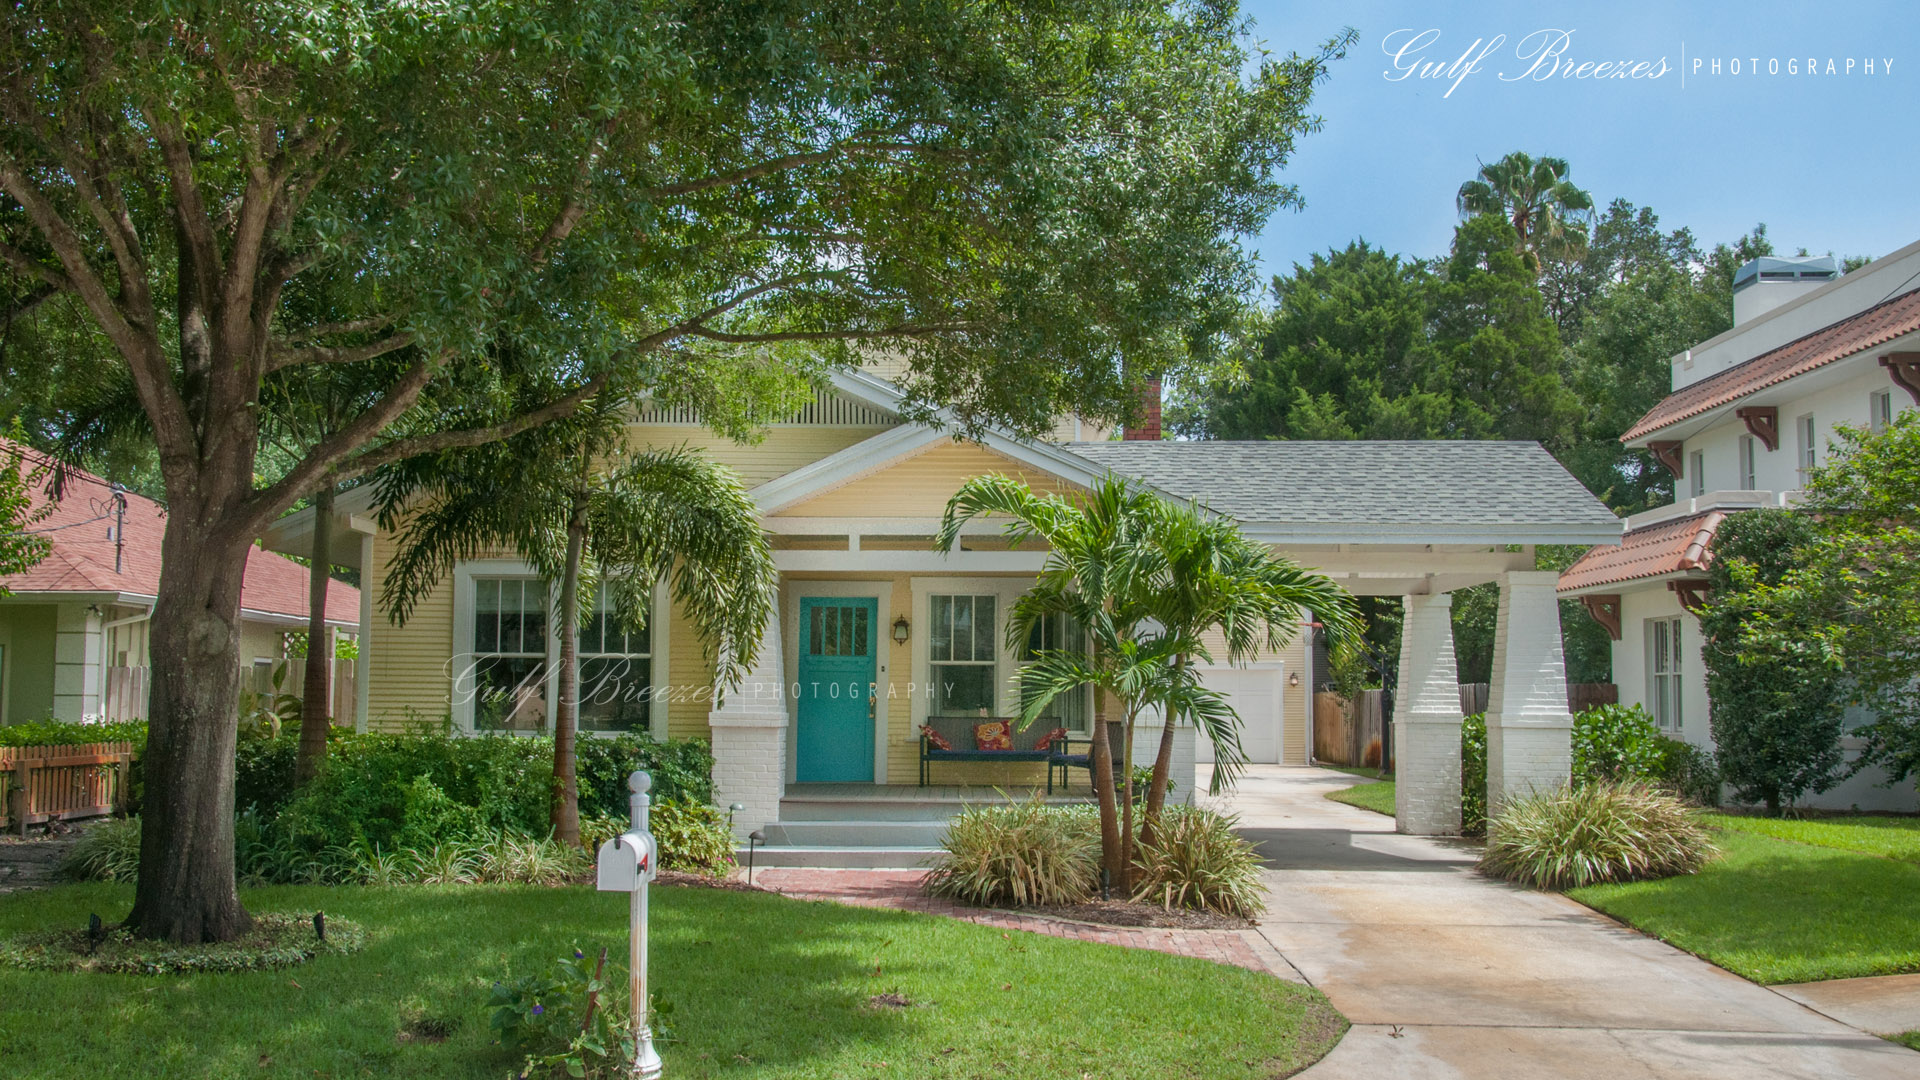 Beautiful Tampa Fl Property Gulf Breezes Photography